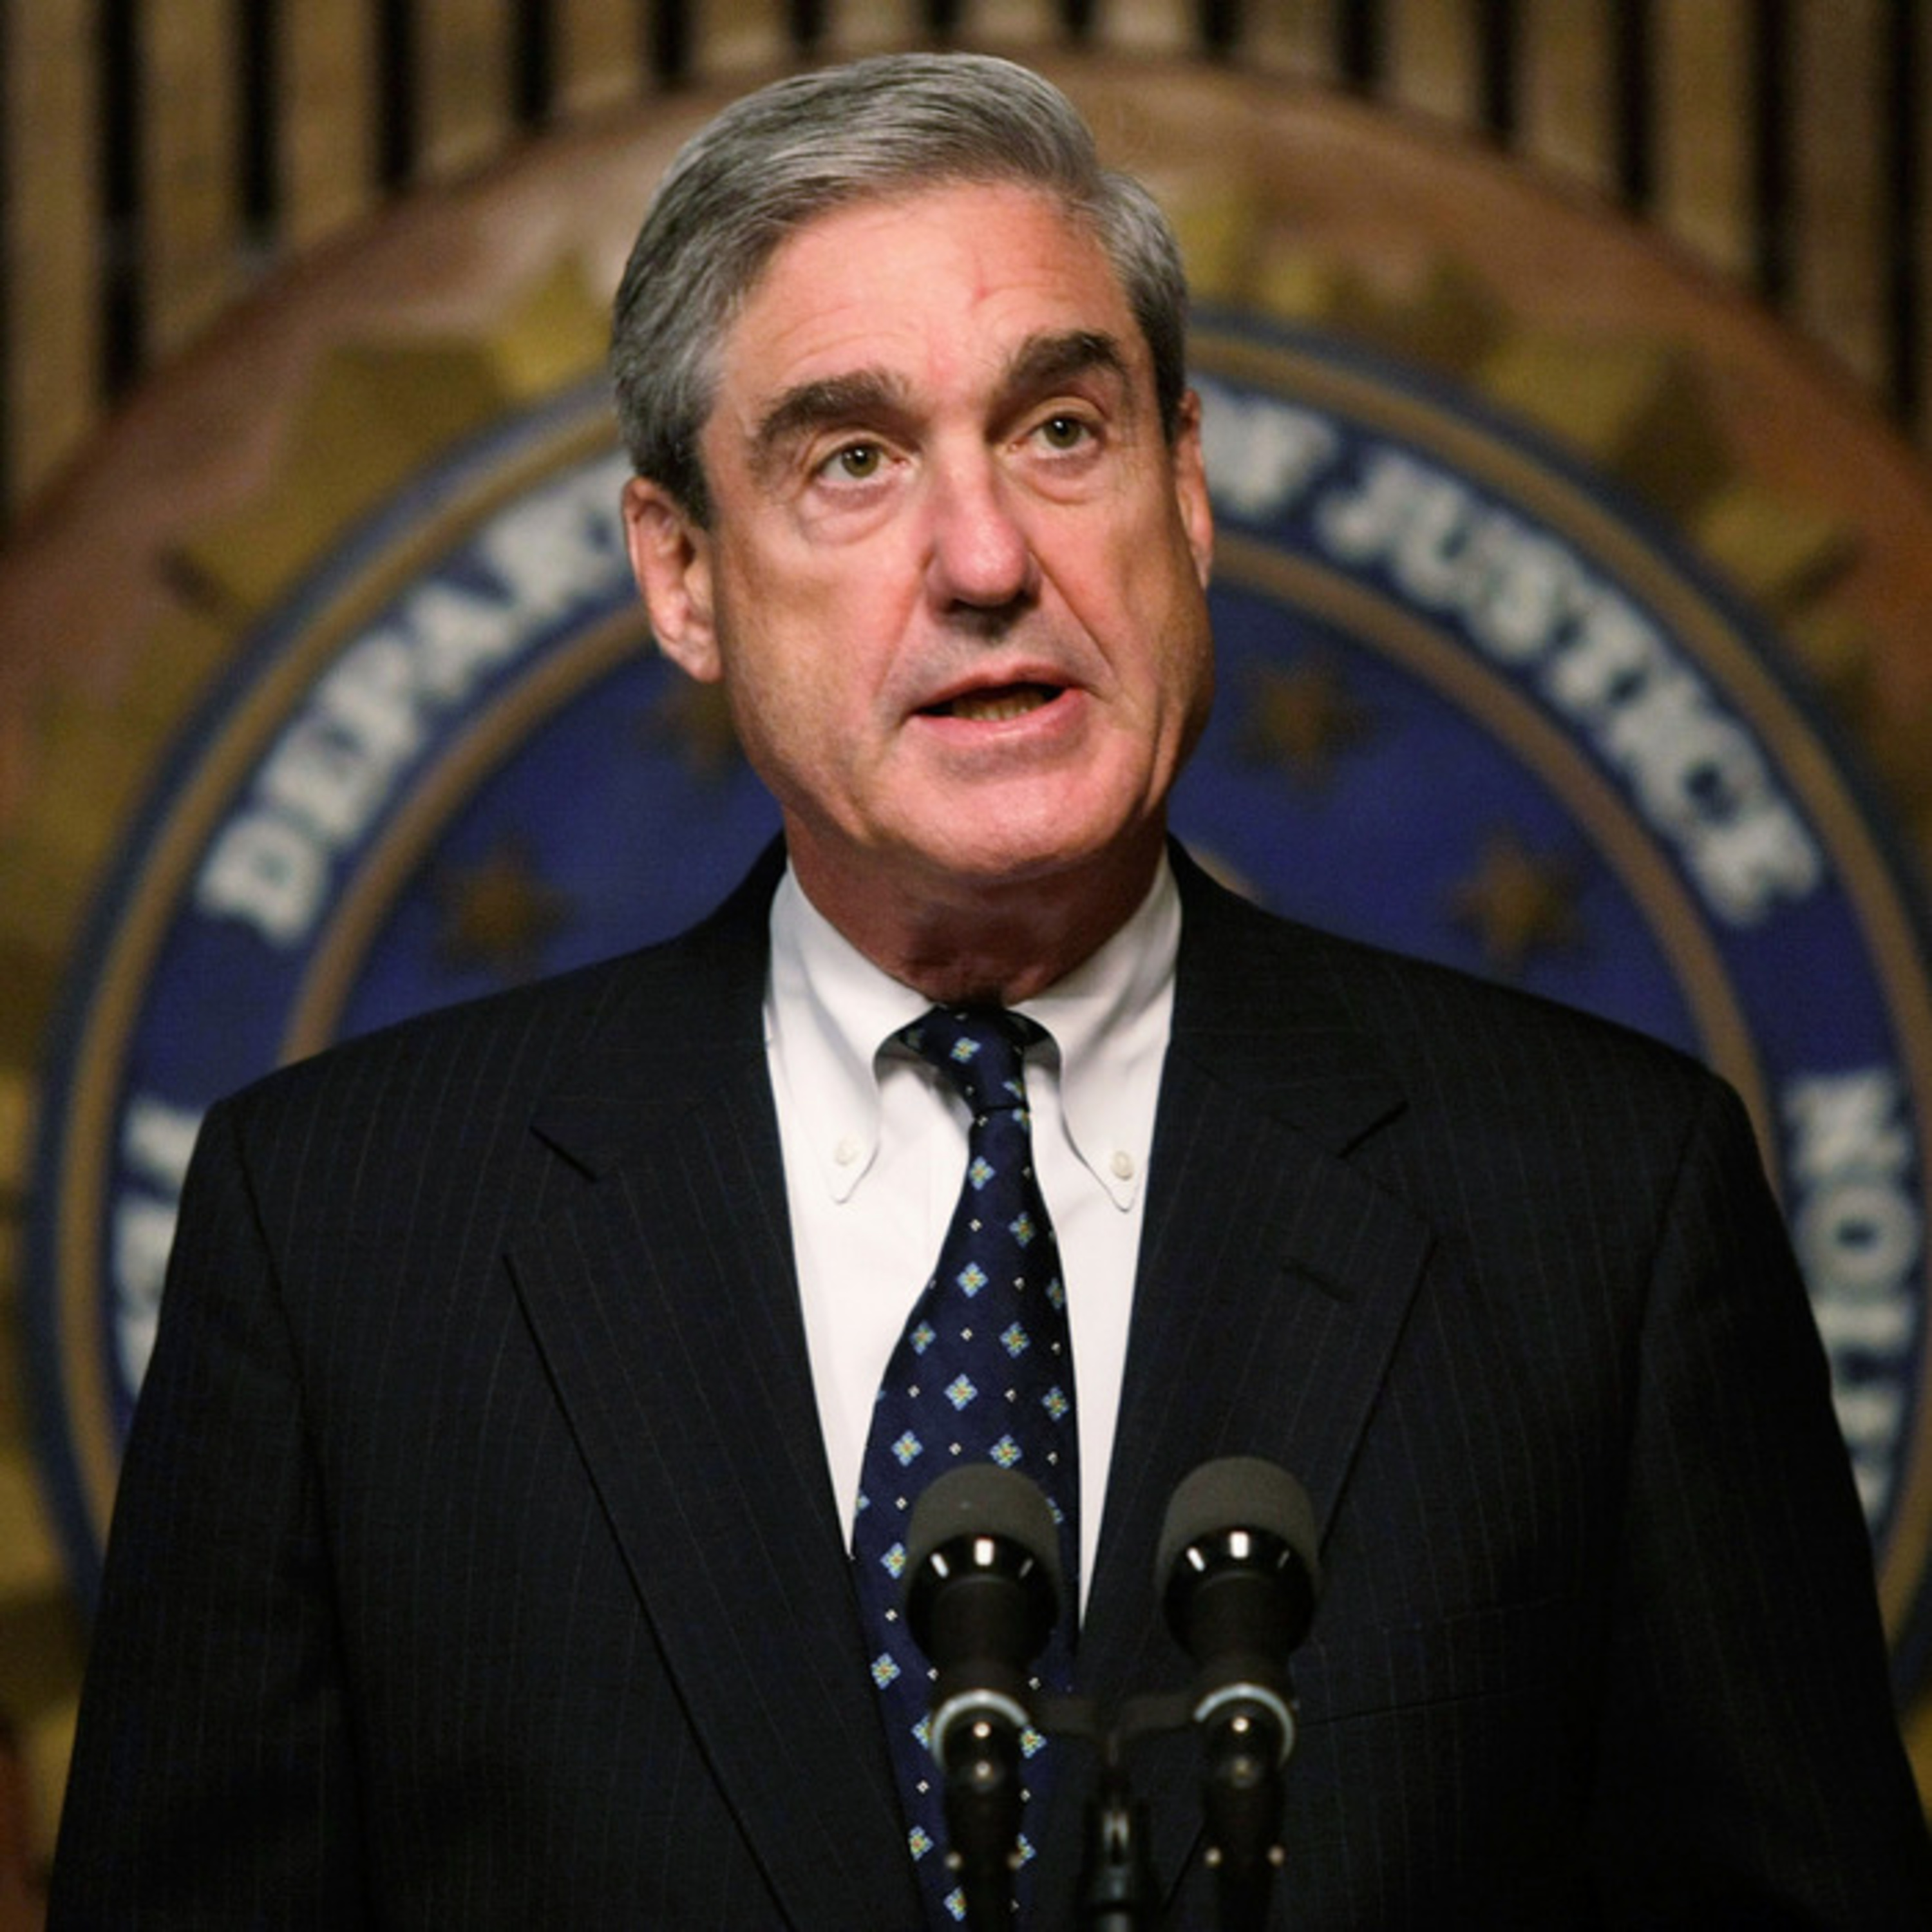 Special Counsel Robert Mueller takes the stage in Front of the American people